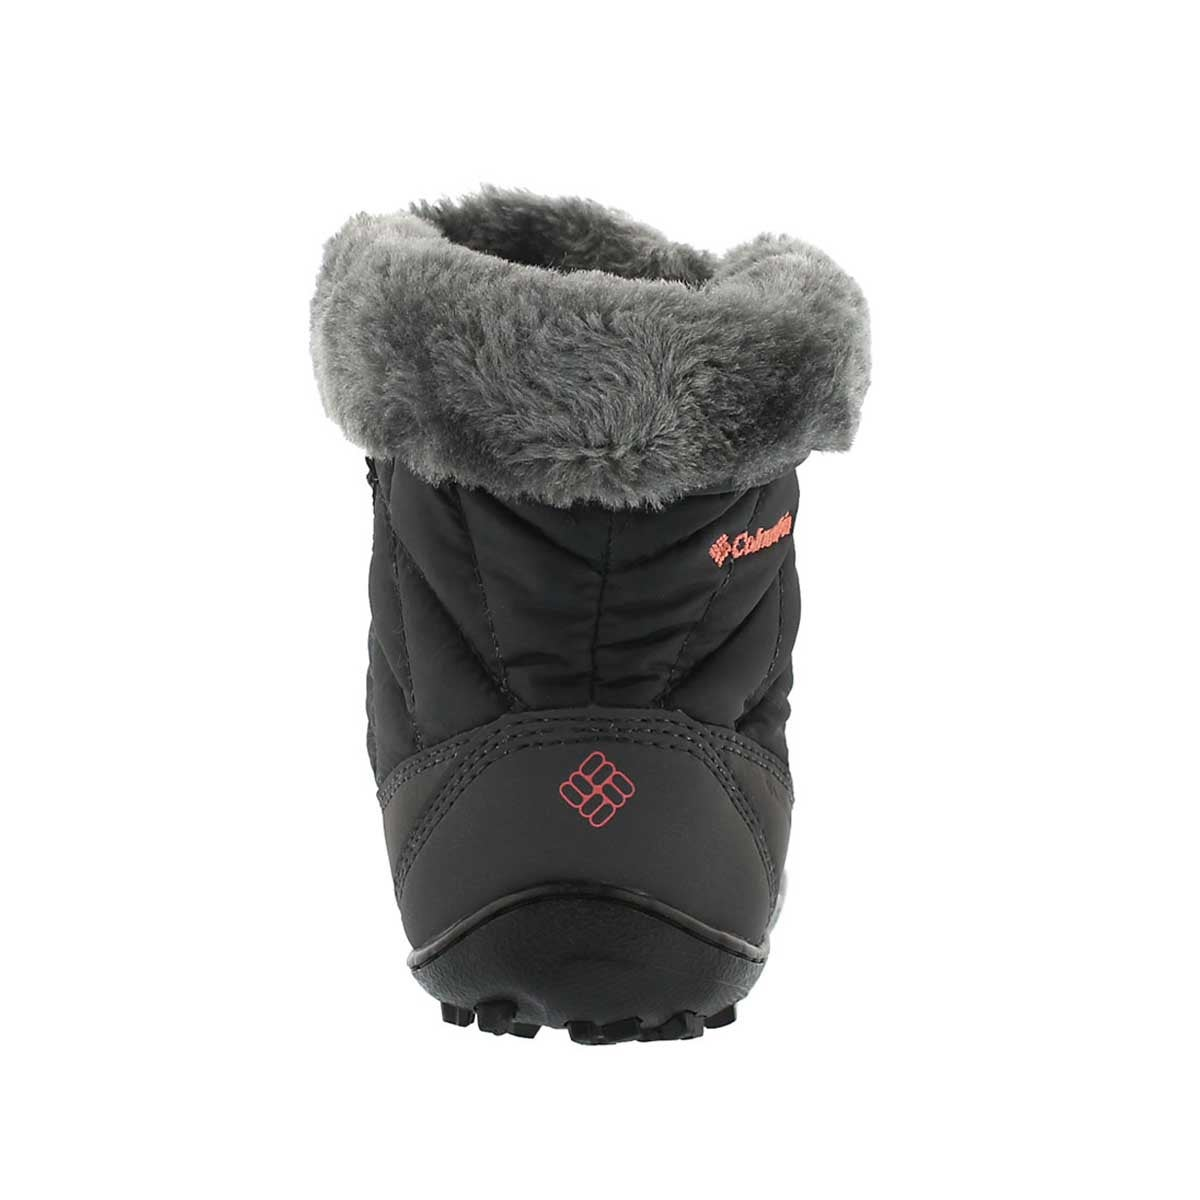 Botte d'hiver Minx Shorty, requin, fille